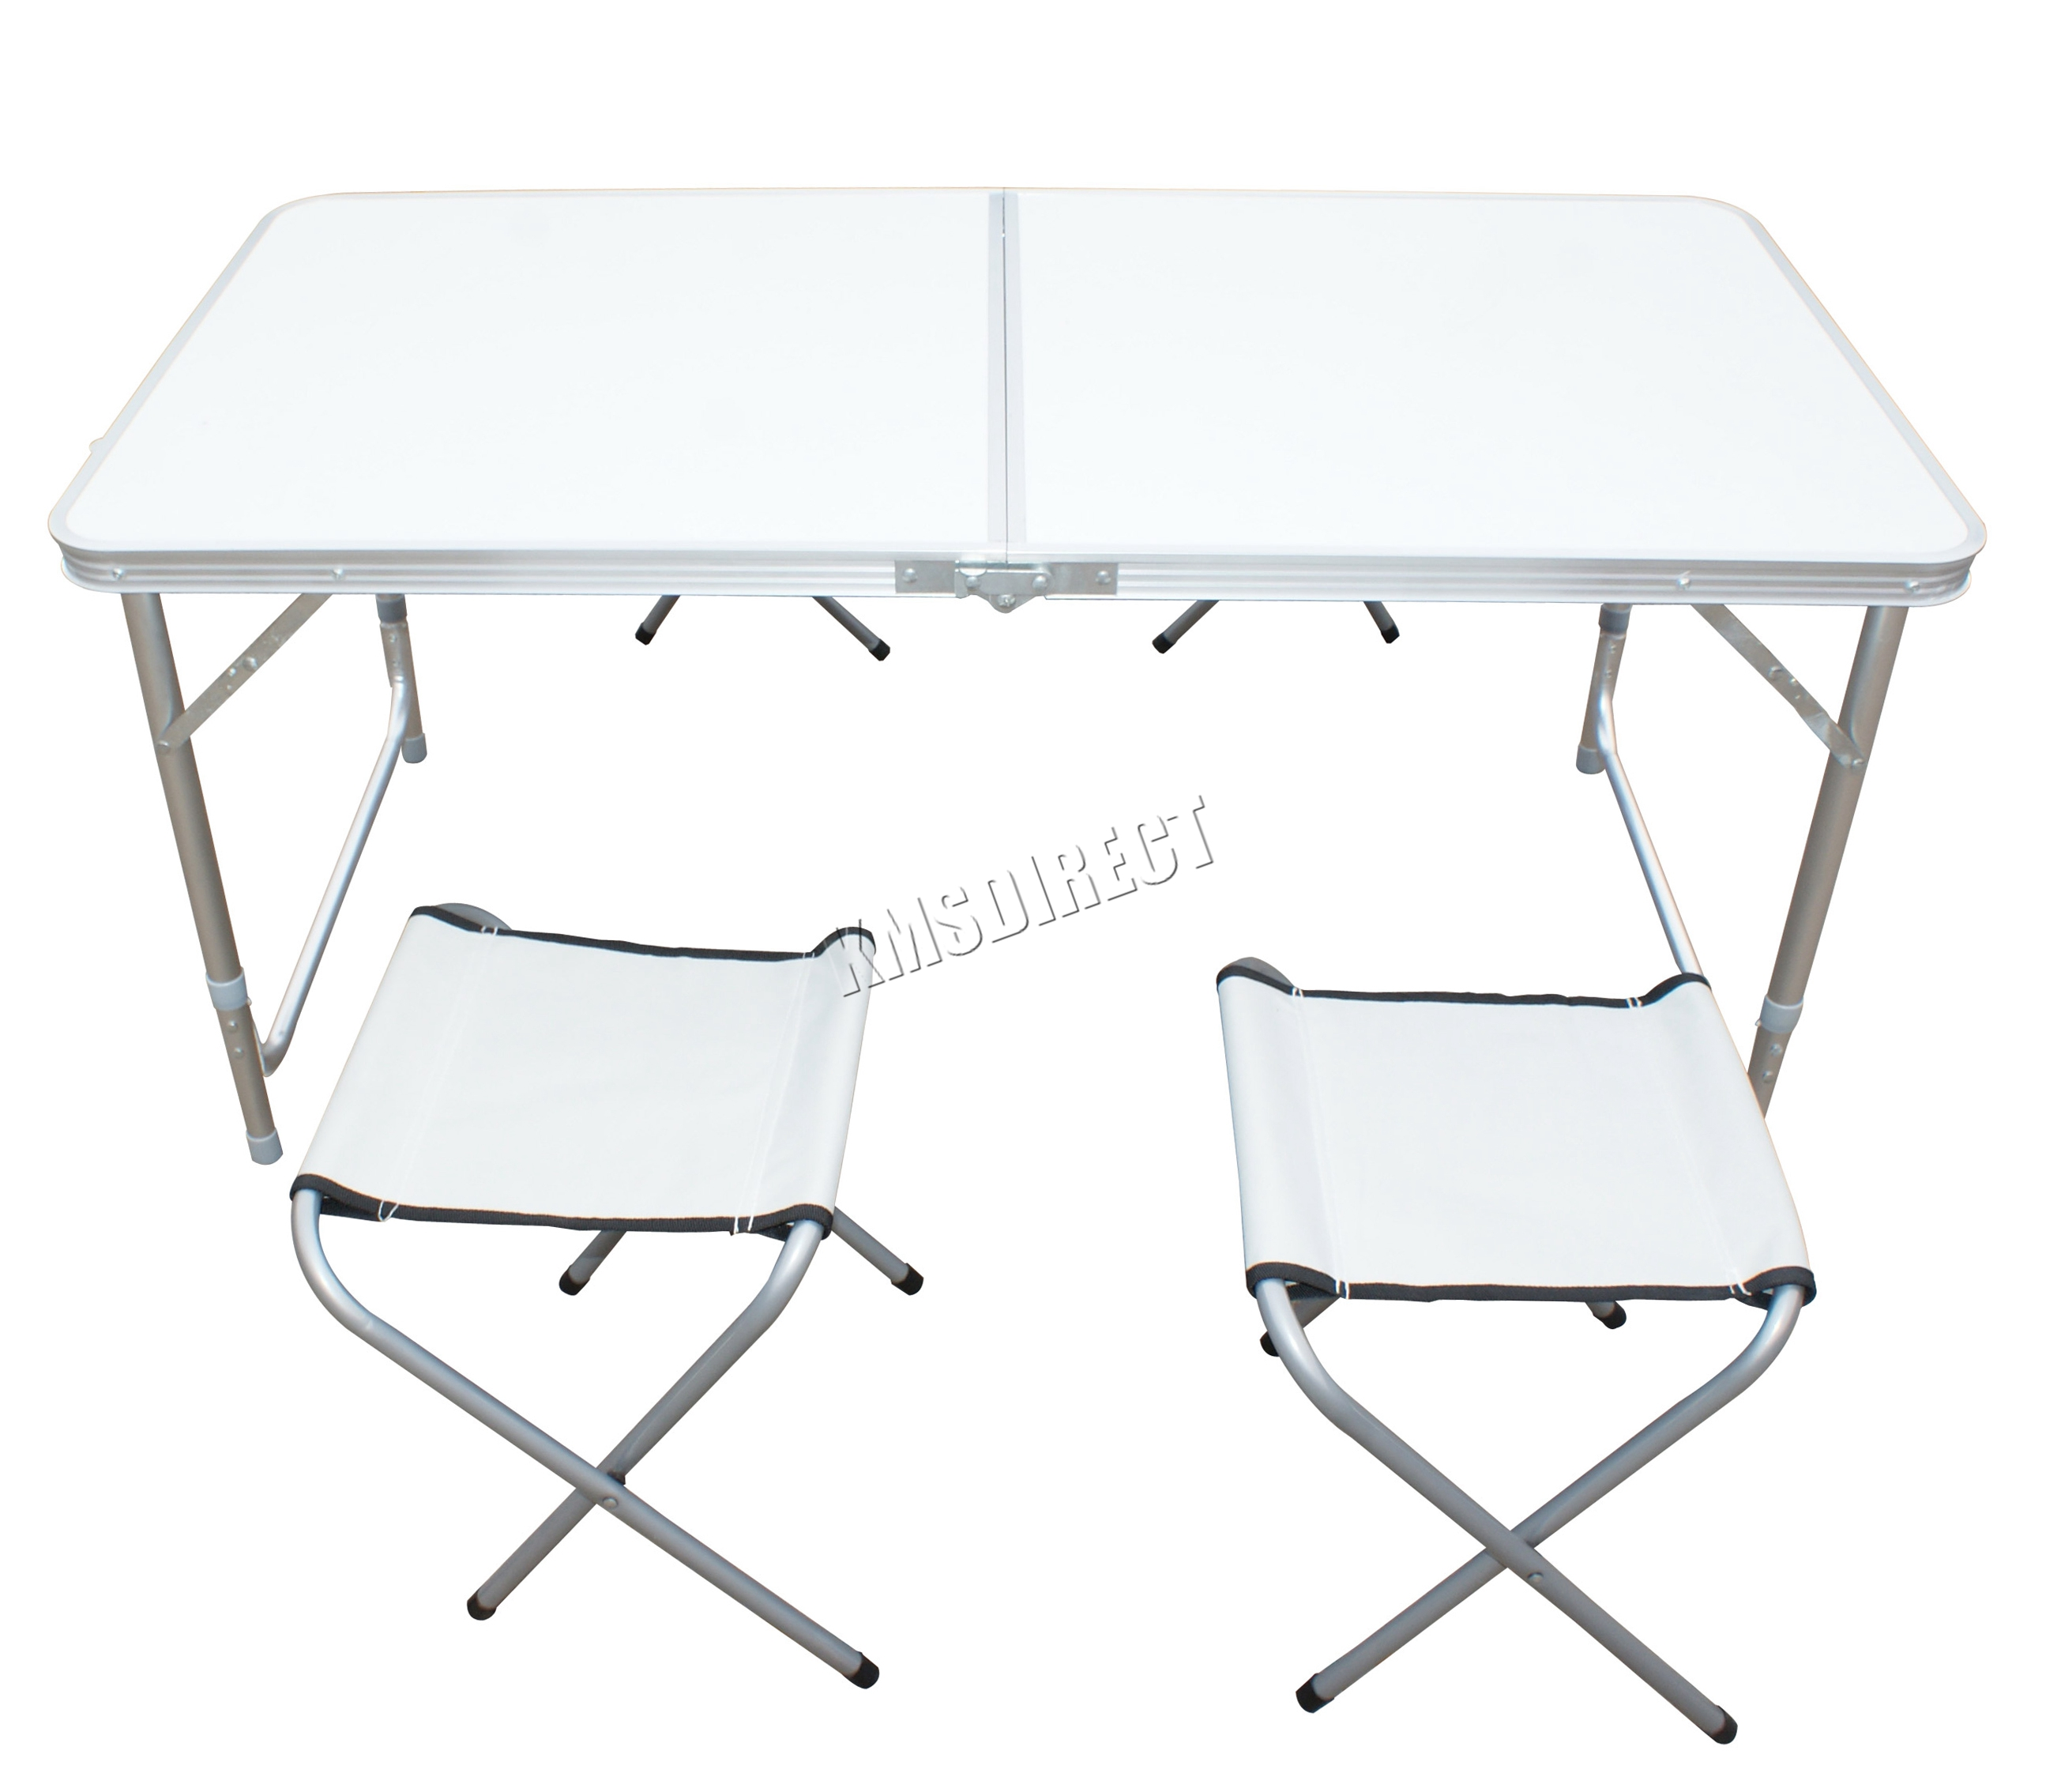 Portable Dining Table And Chairs Foxhunter Garden Camping Table Foldable Portable Picnic